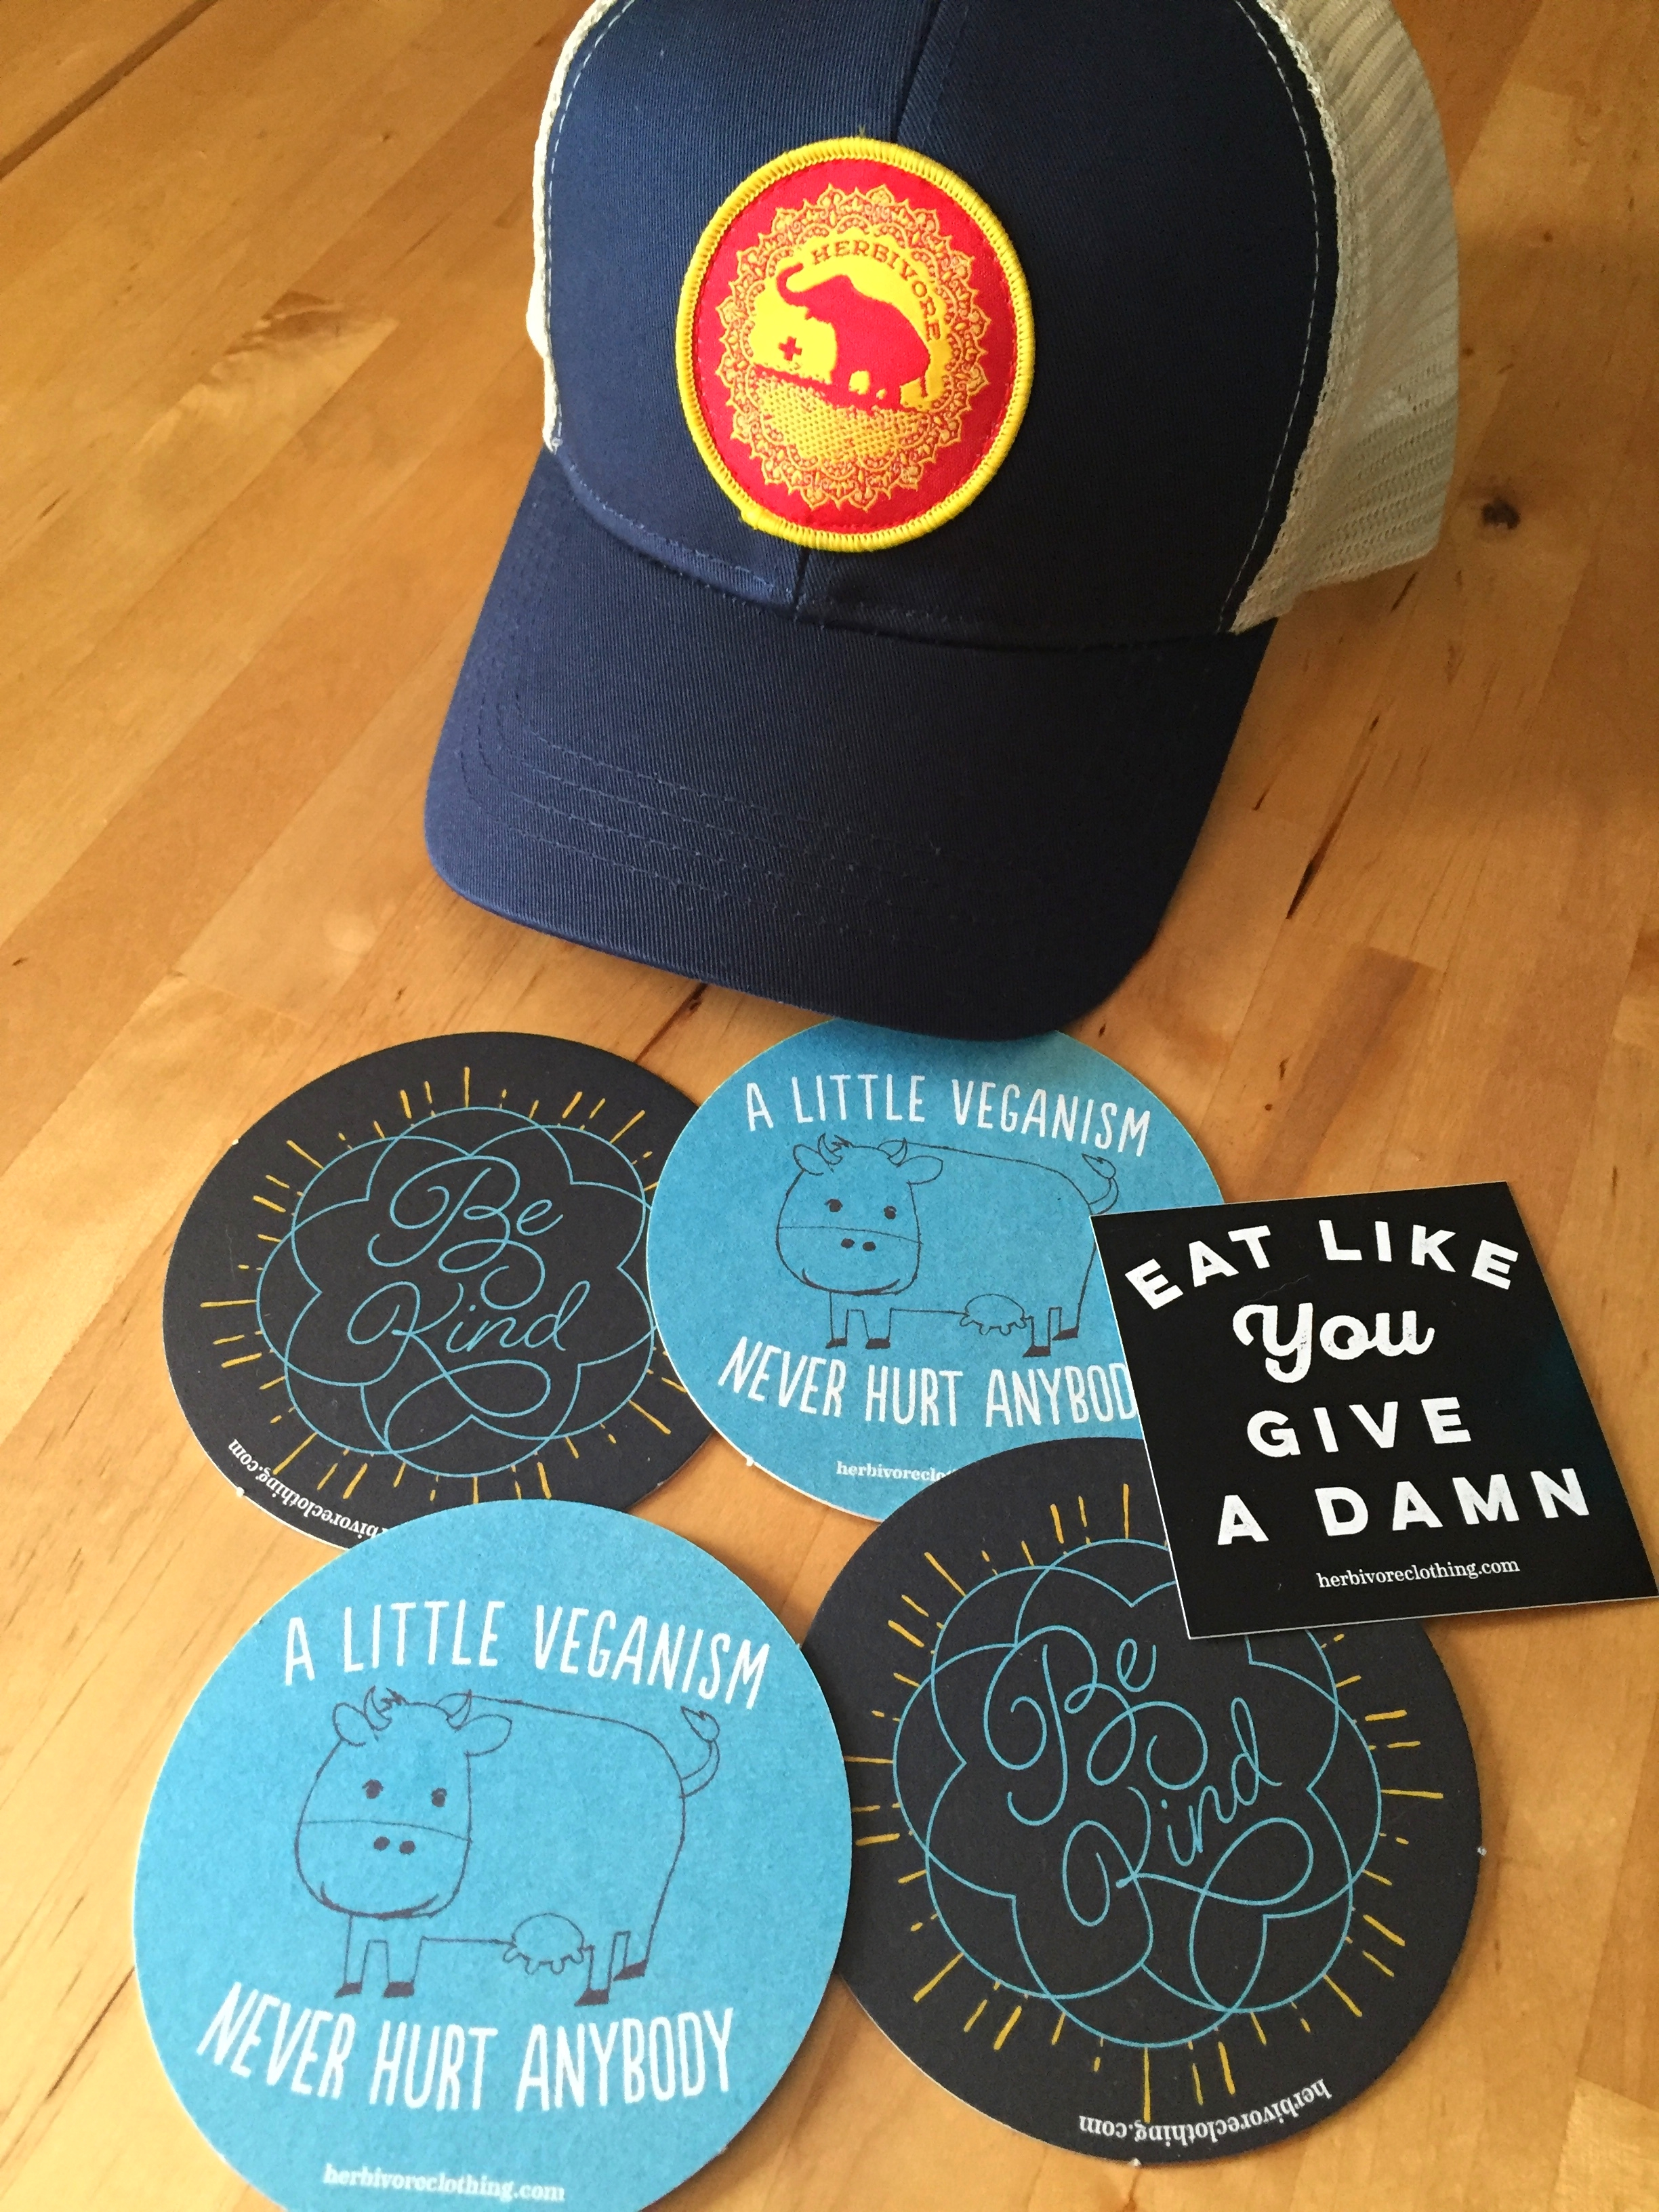 Some vegan swag from  Herbivore Clothing Co.